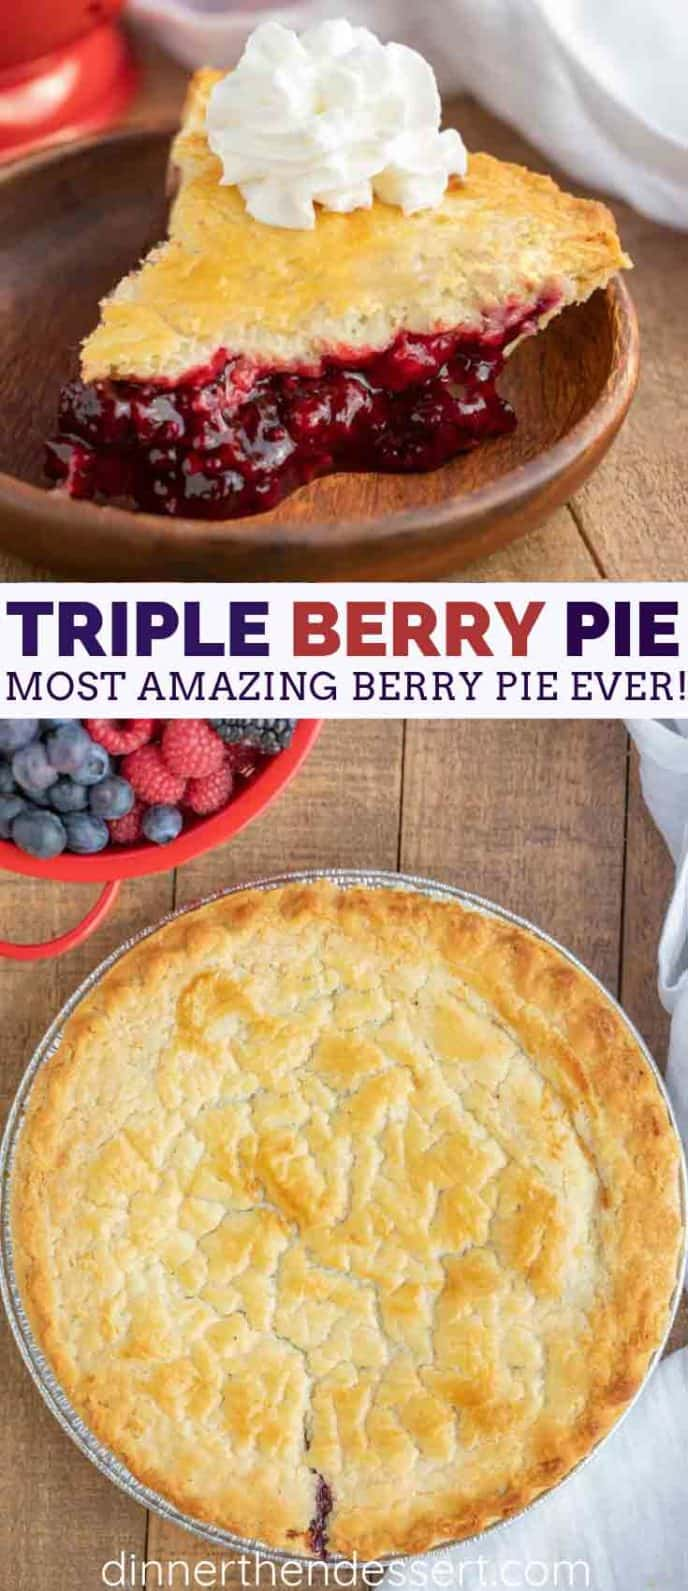 Triple Berry Pie with Raspberries, Blackberries, and Blueberries